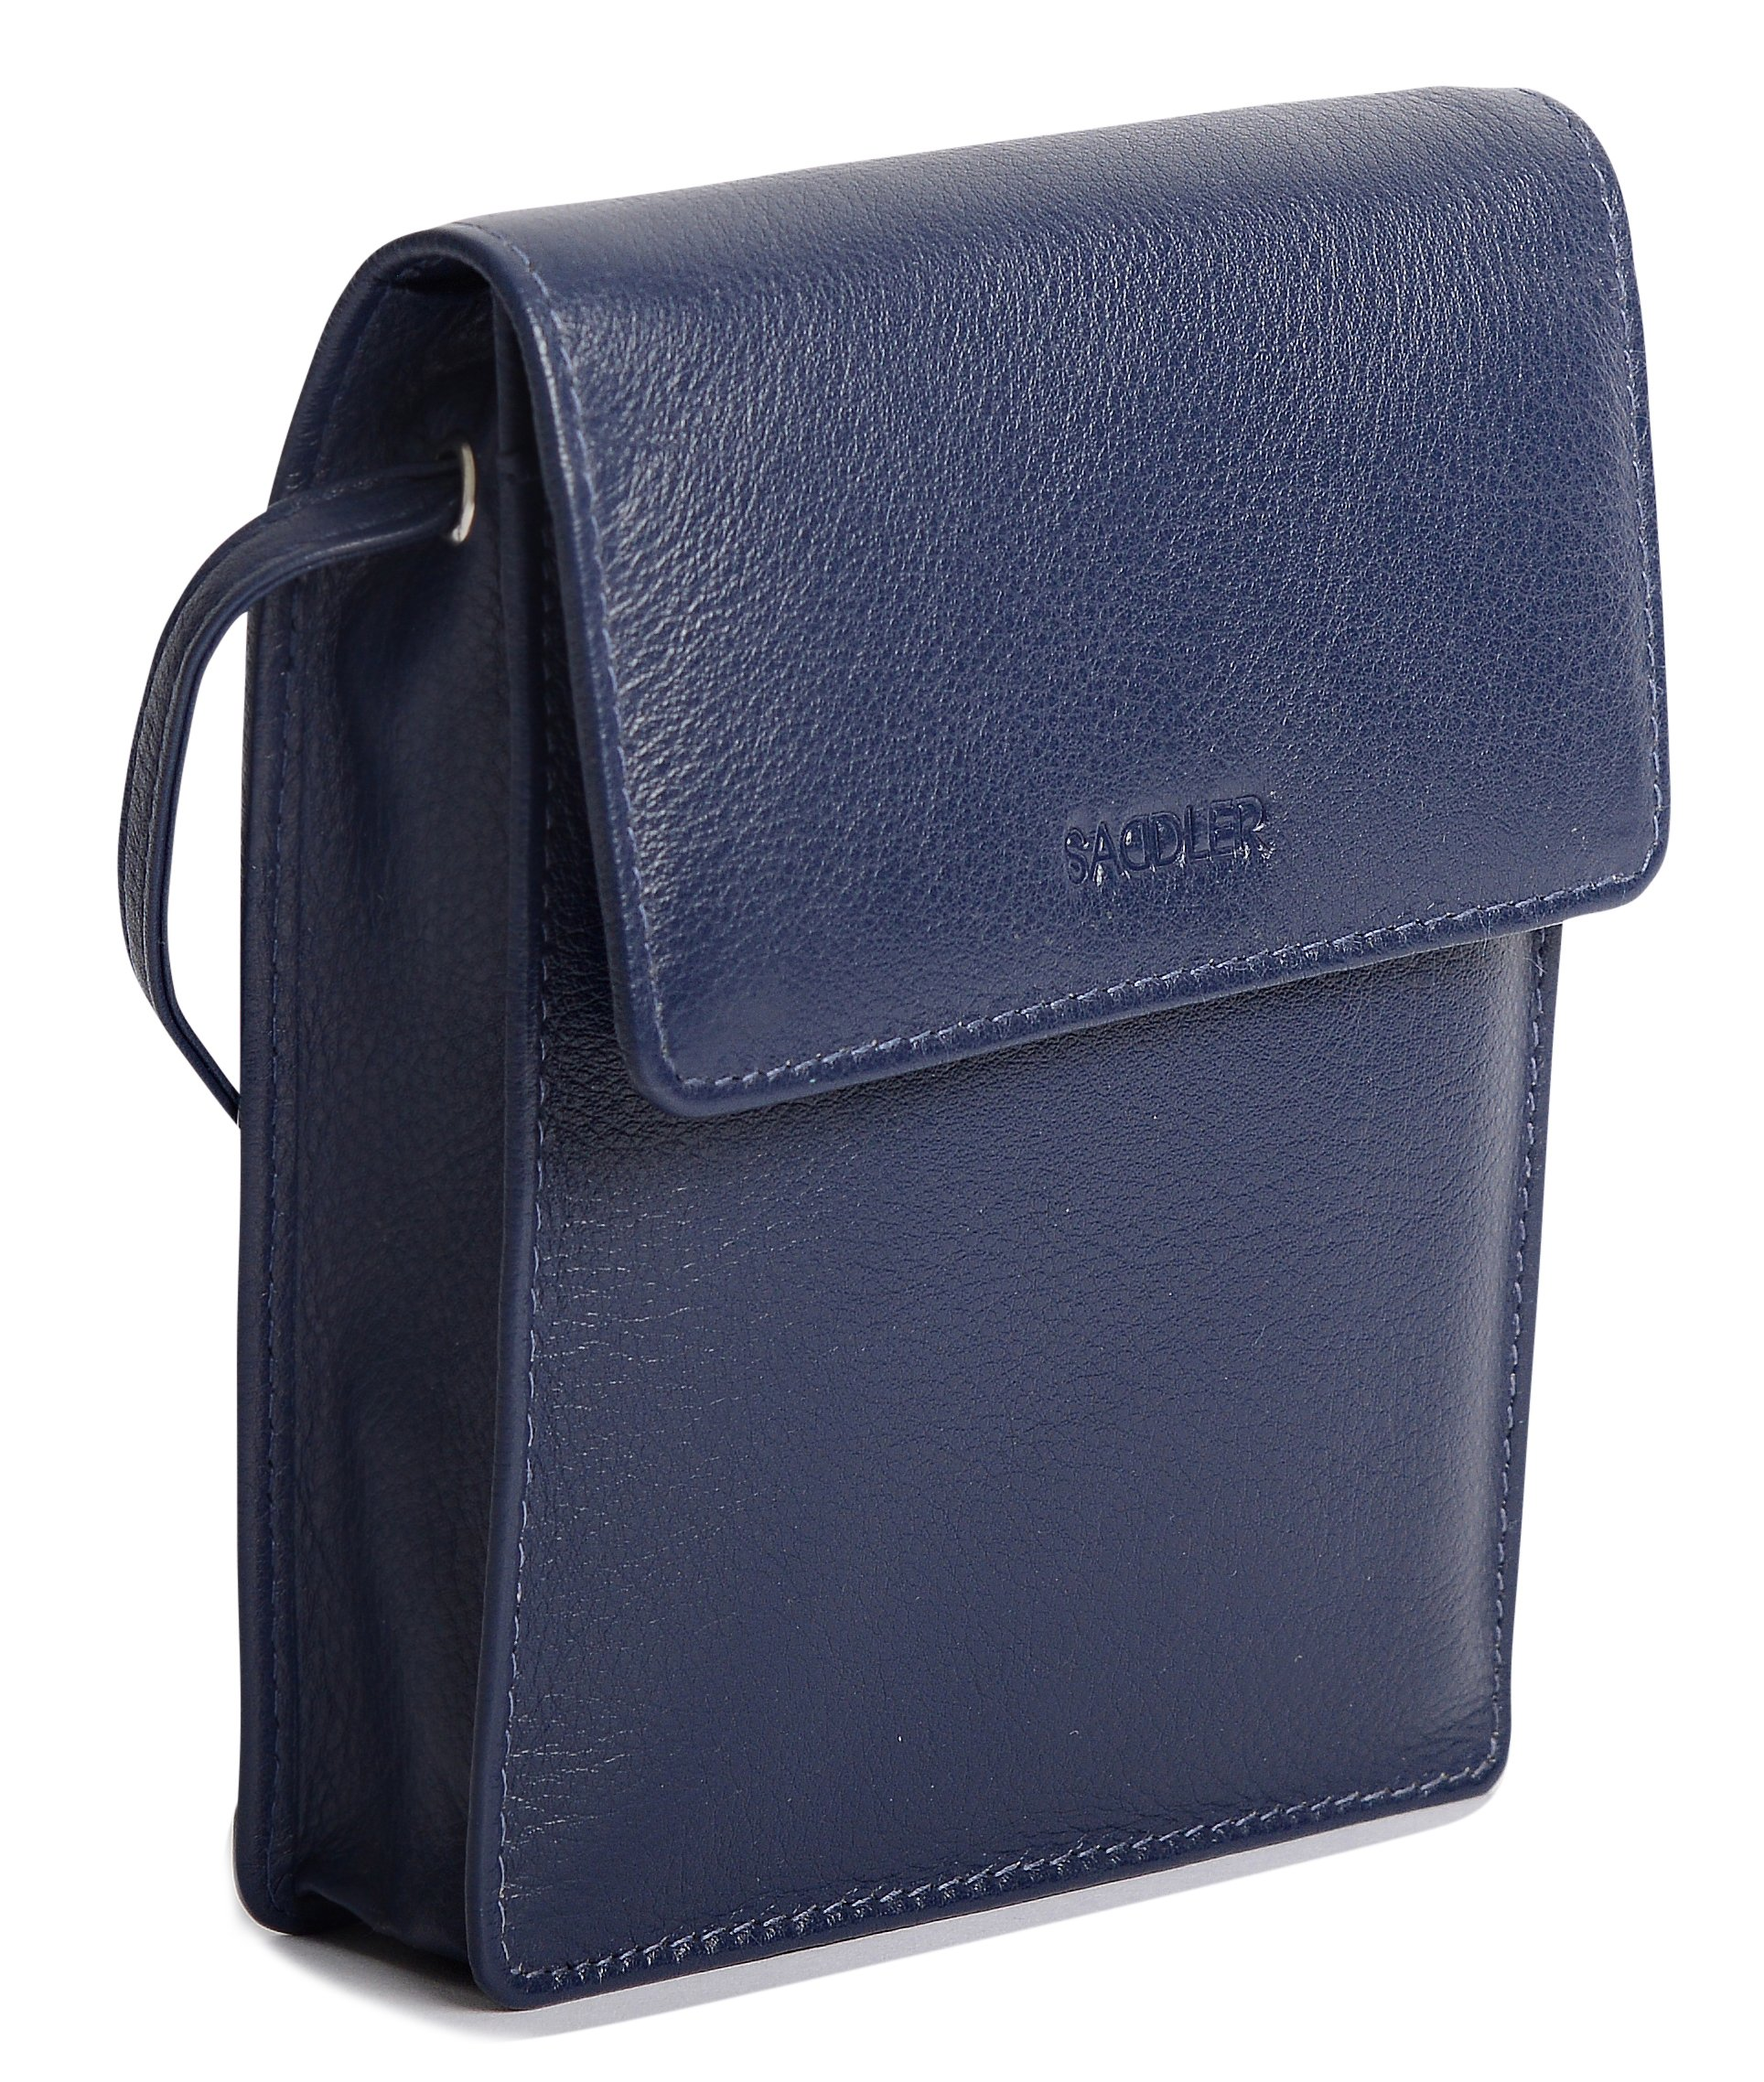 SADDLER Leather Cross Body Travel Passport Pouch - Card Holder - Peacoat Blue by Saddler (Image #1)